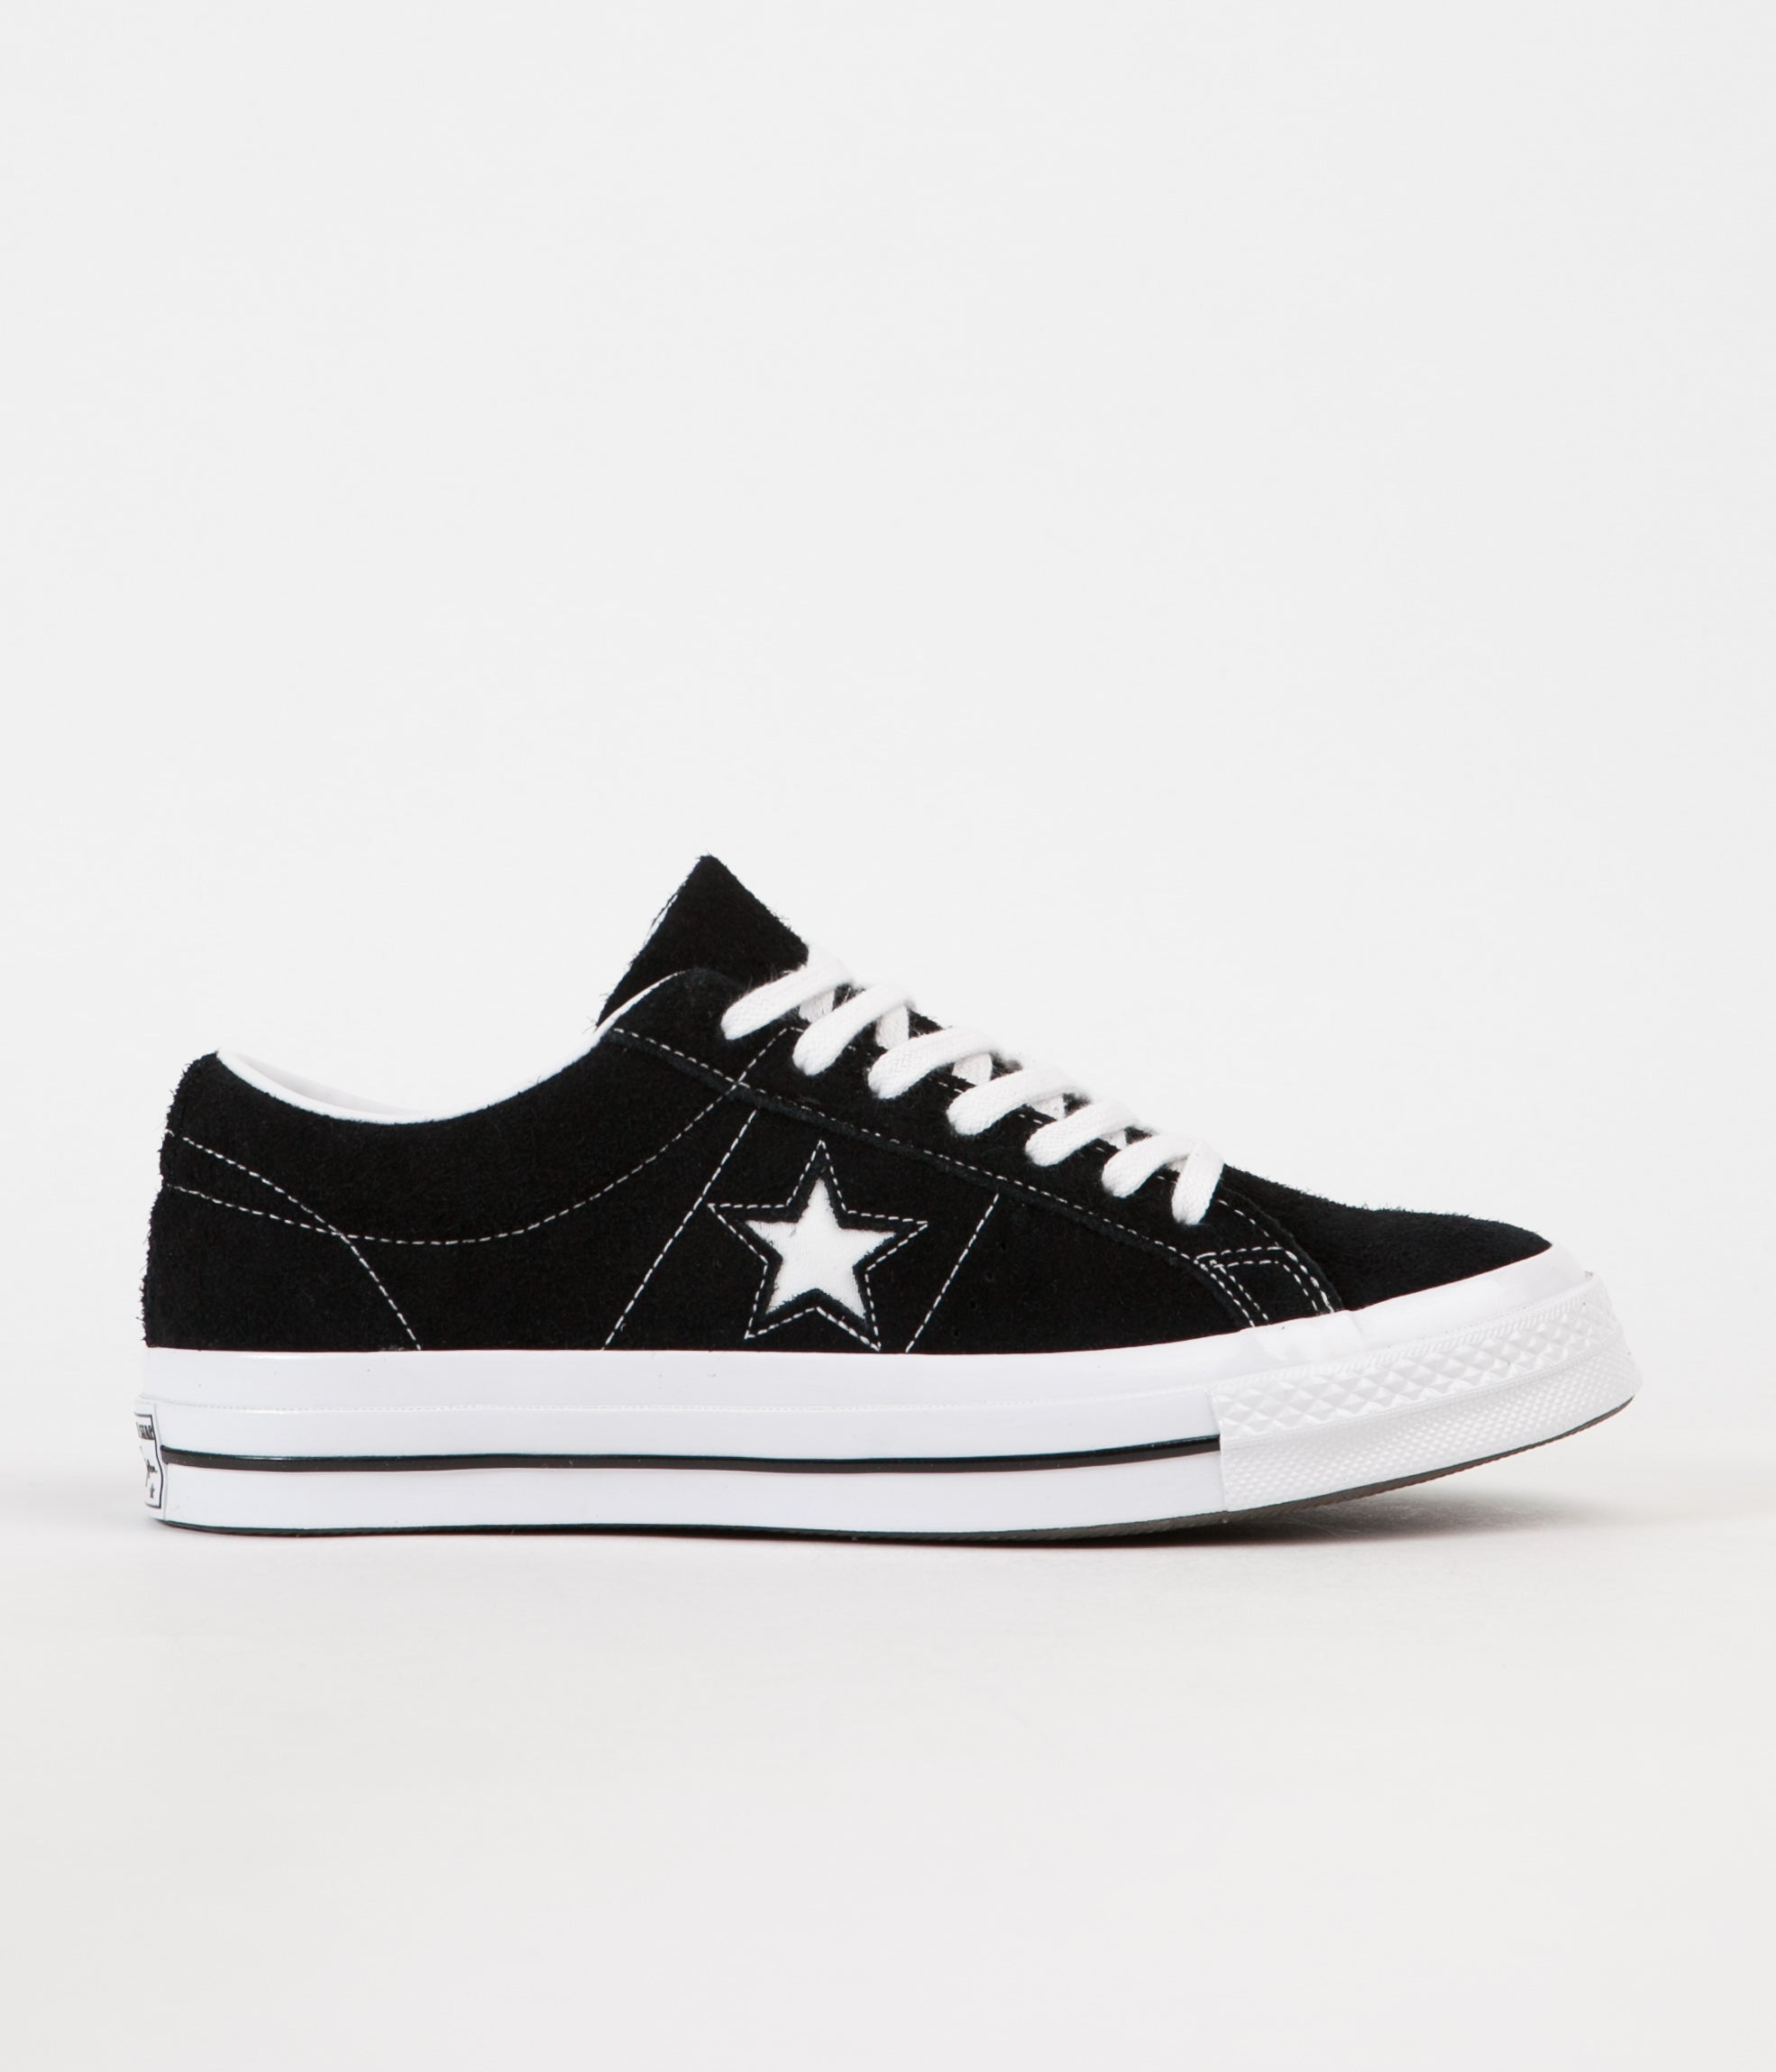 40fc39f9d3a8 Converse One Star Ox Shoes - Black   White   White